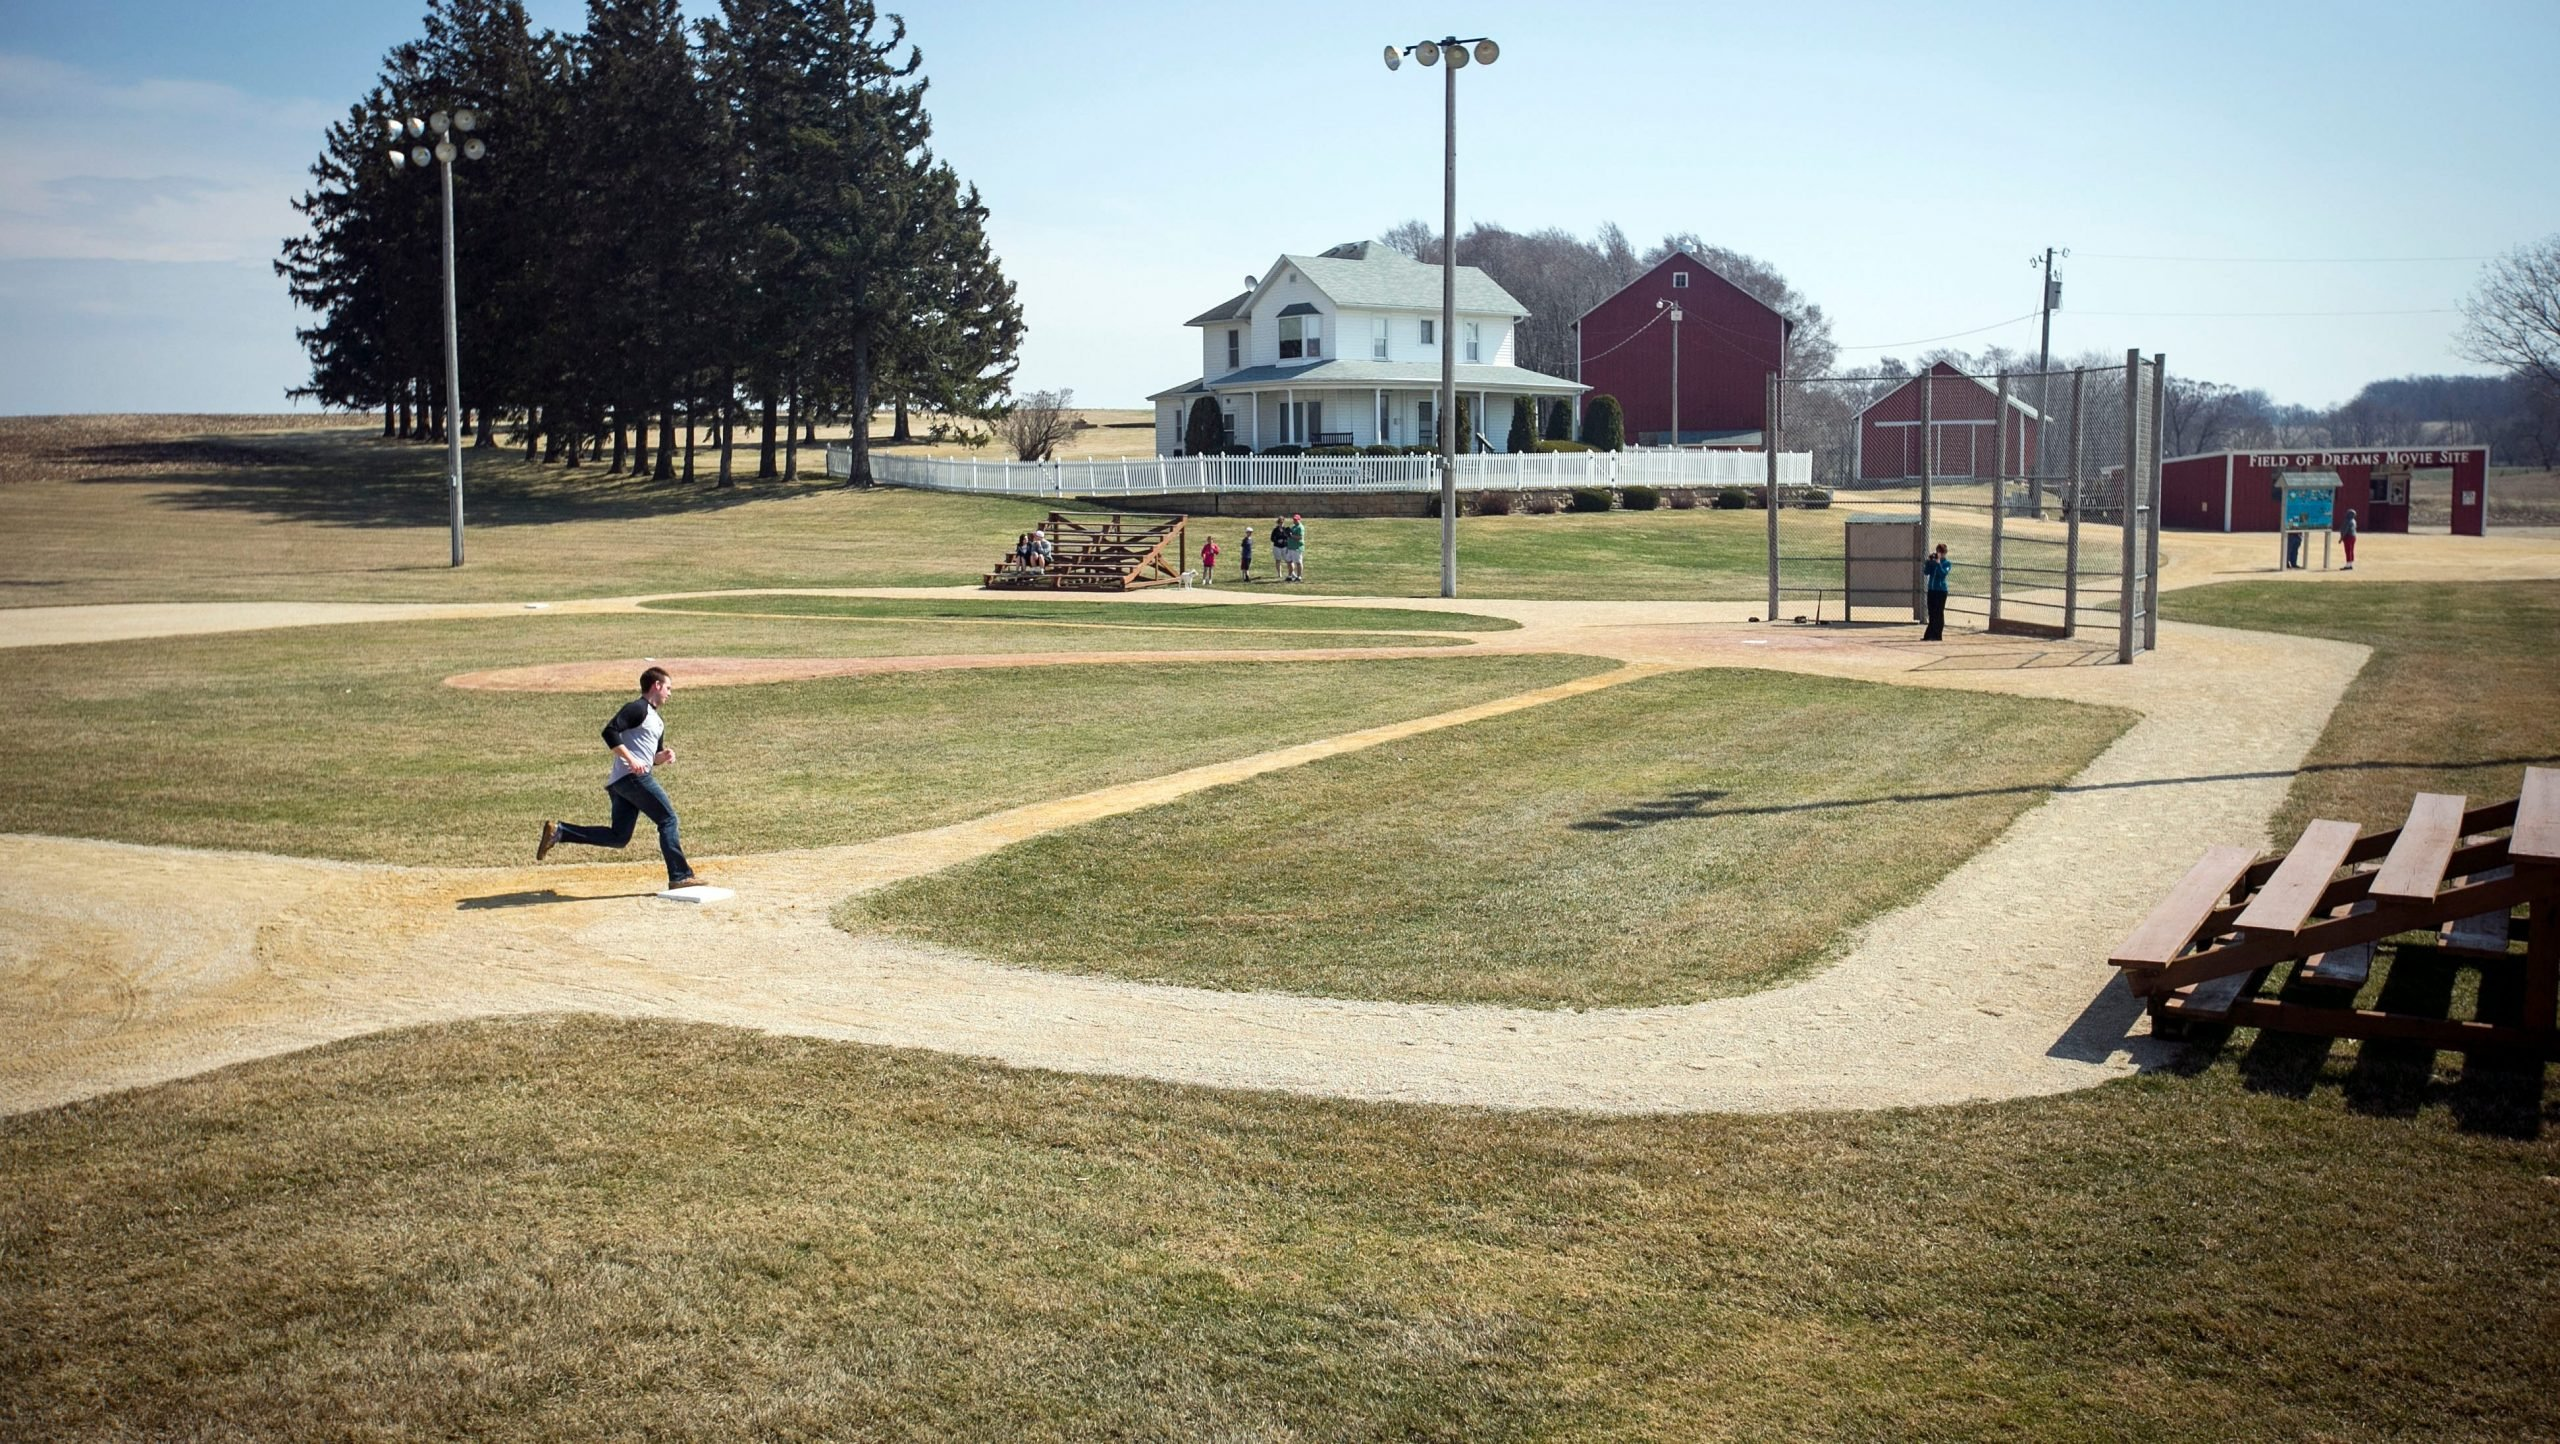 g10 scaled 22 Things You Might Not Have Realised About Field Of Dreams